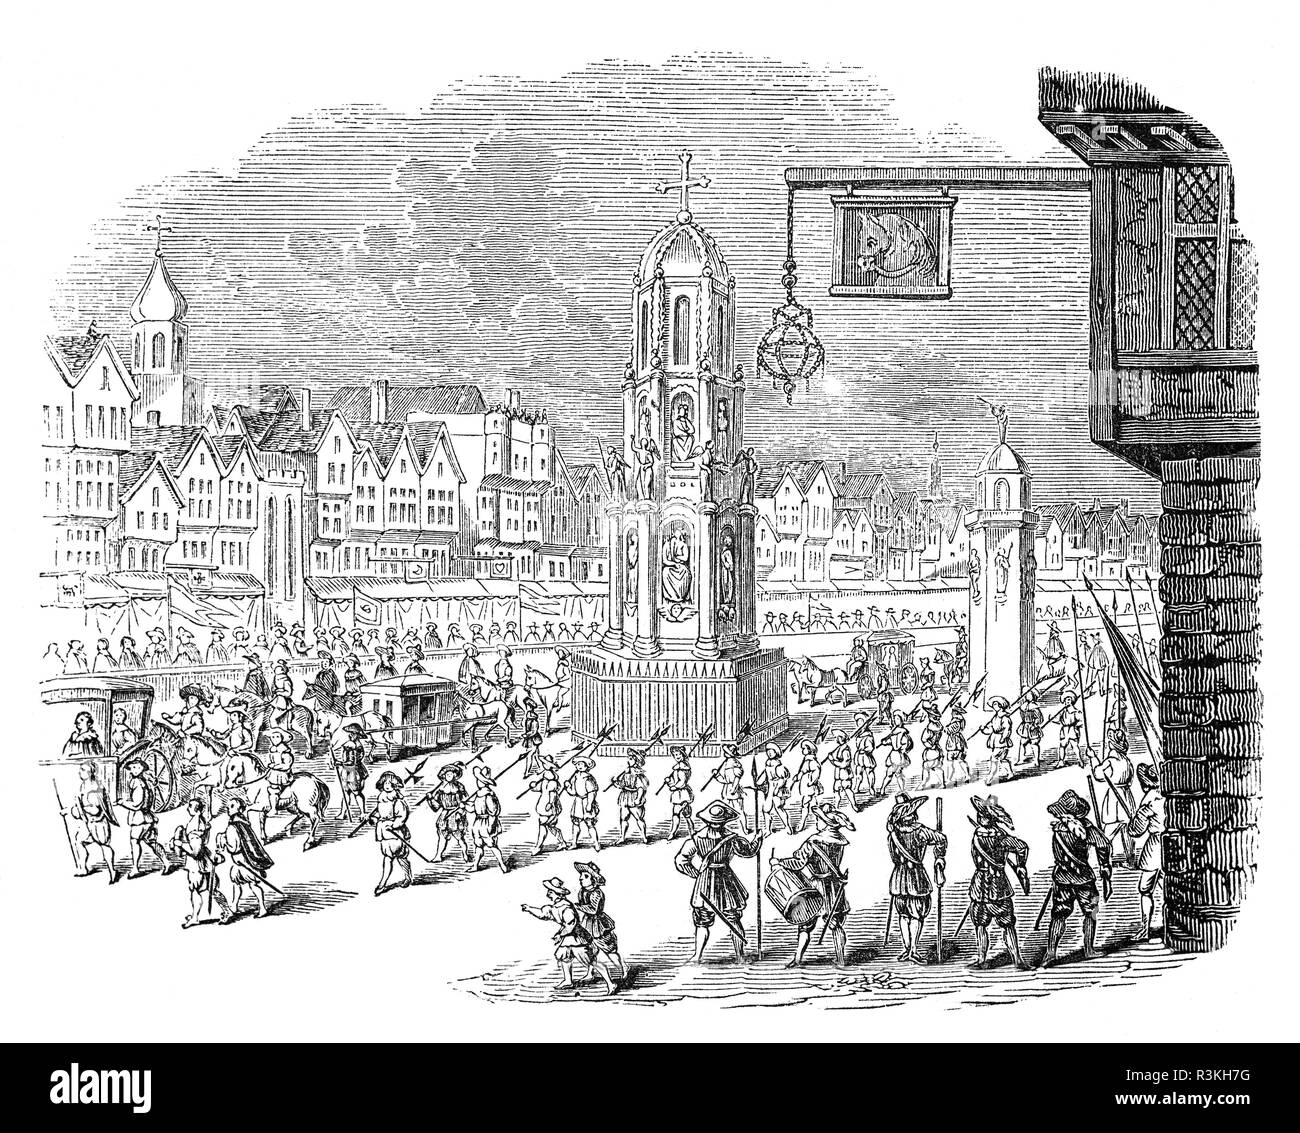 The procession through Cheapside in London of Marie de' Medici, Queen of France to her daughter Henrietta Maria of France, queen consort of England, Scotland, and Ireland and her husband King Charles I. - Stock Image